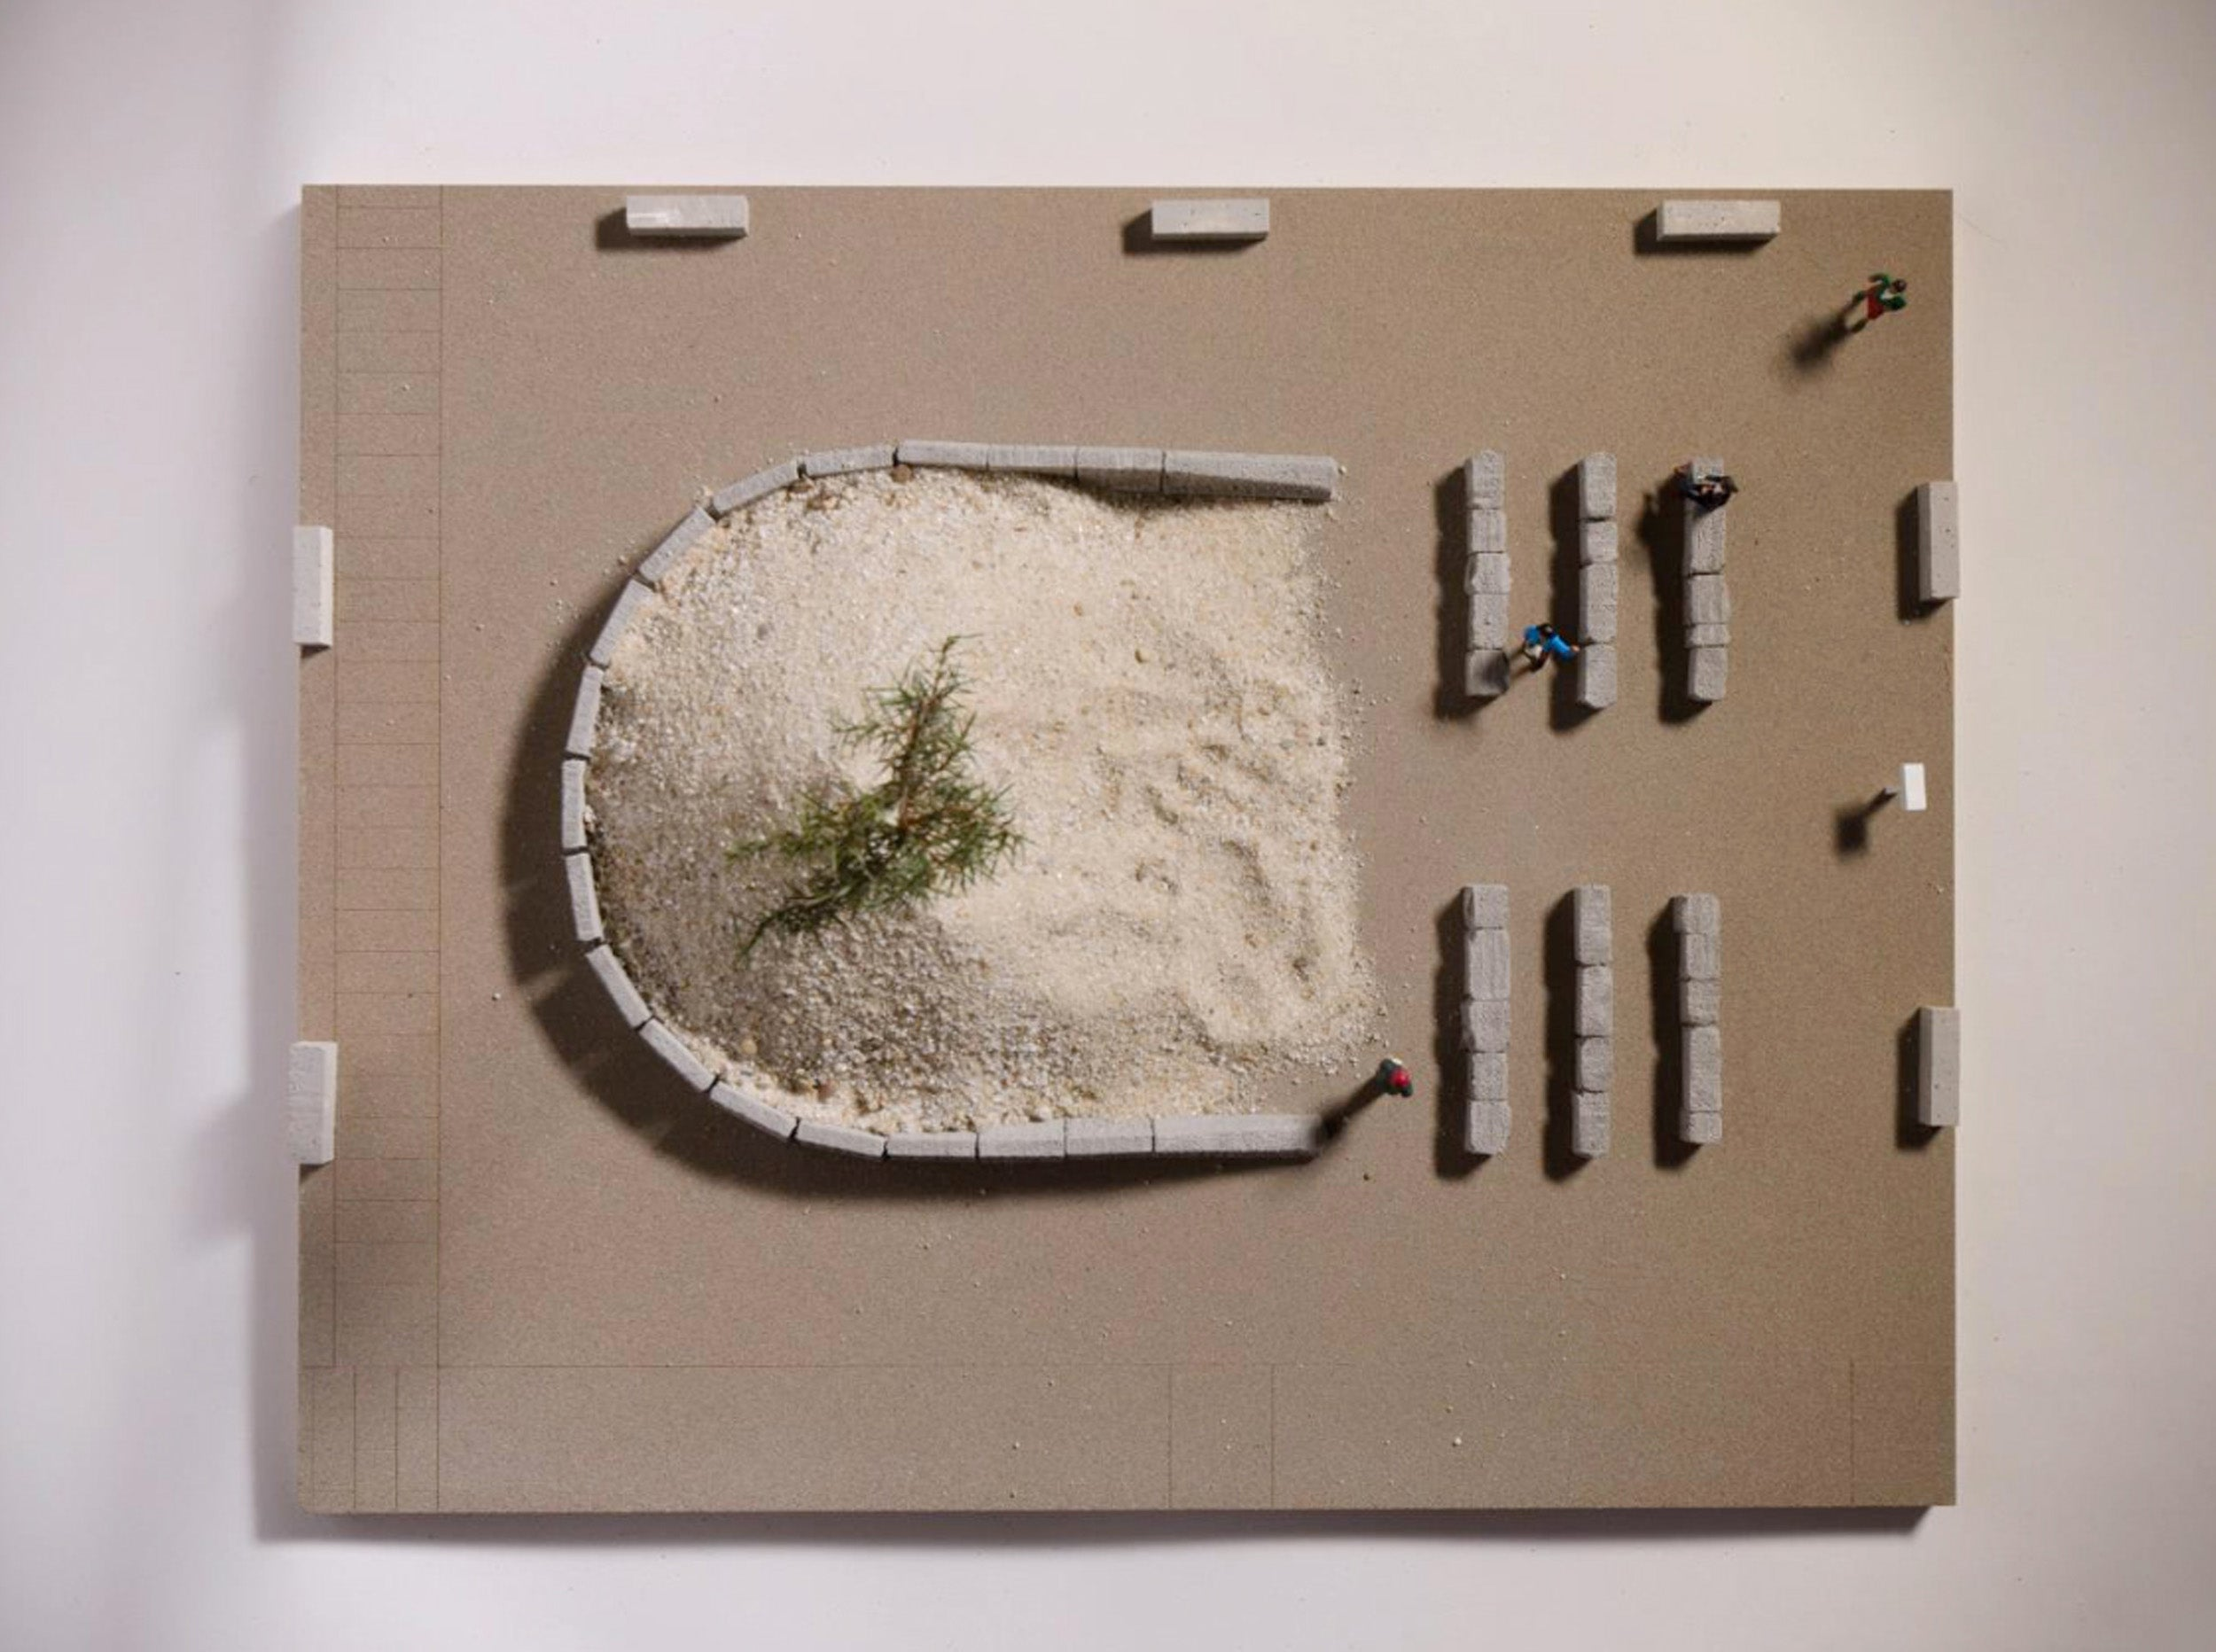 Rendering of design showing pine tree atop mound of sand.